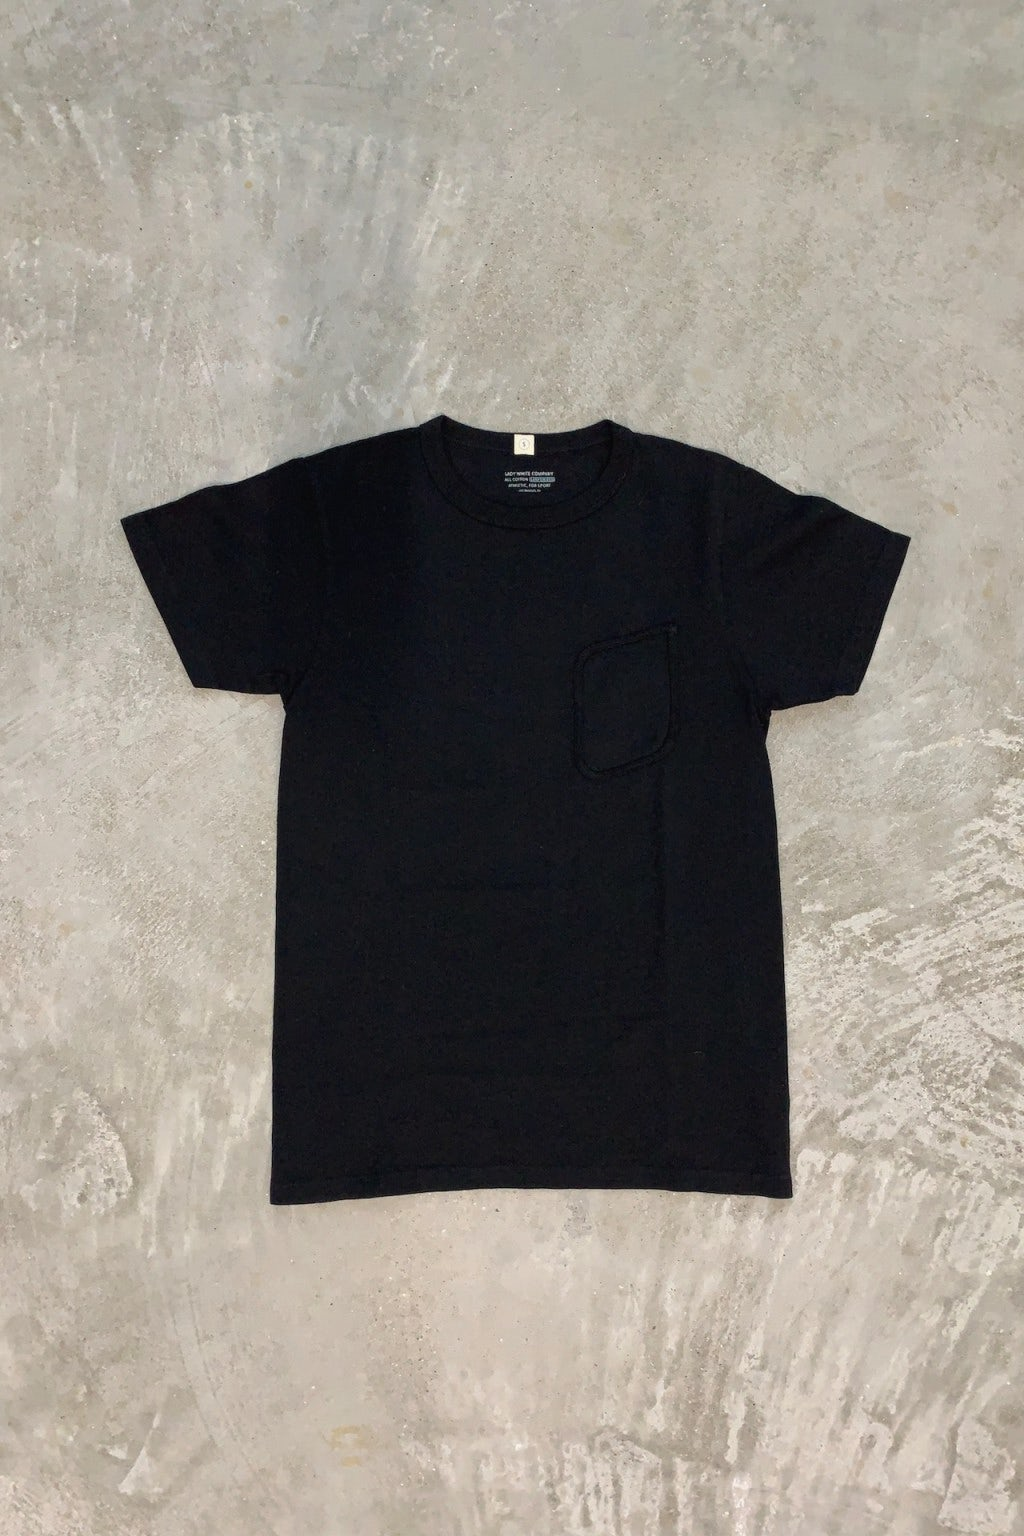 Lady White Co. Clark Pocket T-Shirt Black Cotton